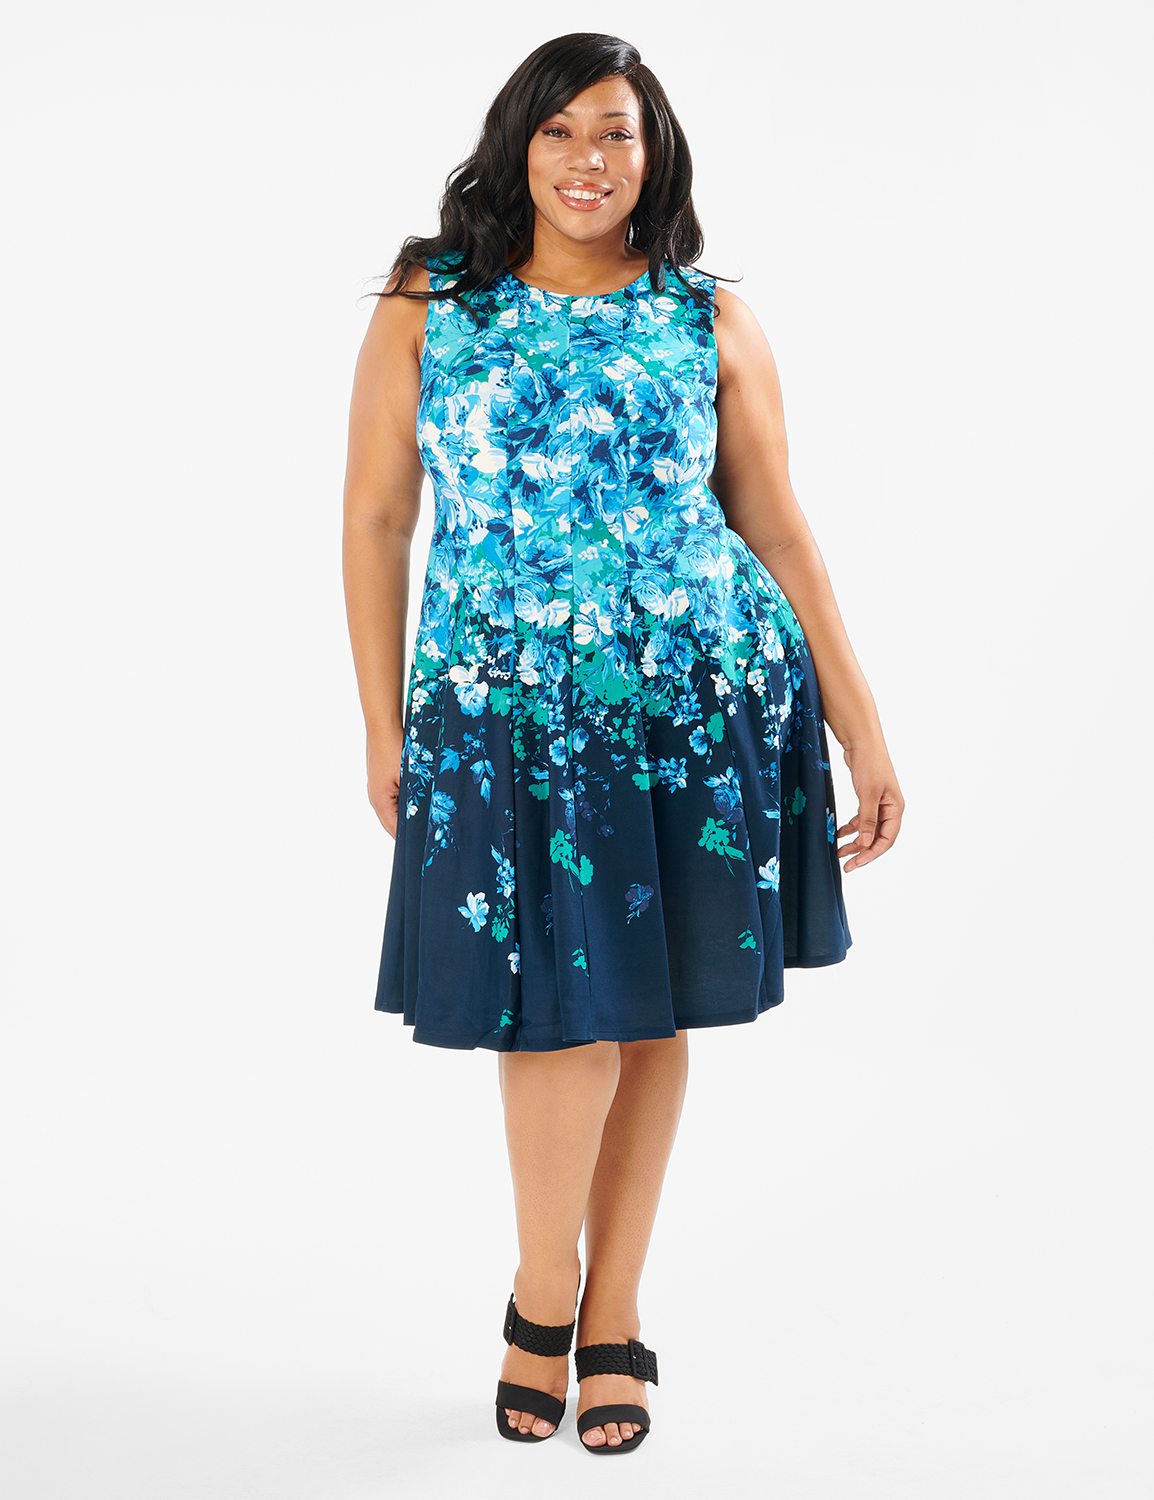 Falling Floral Fit and Flare Dress - Plus -Navy/Teal - Front